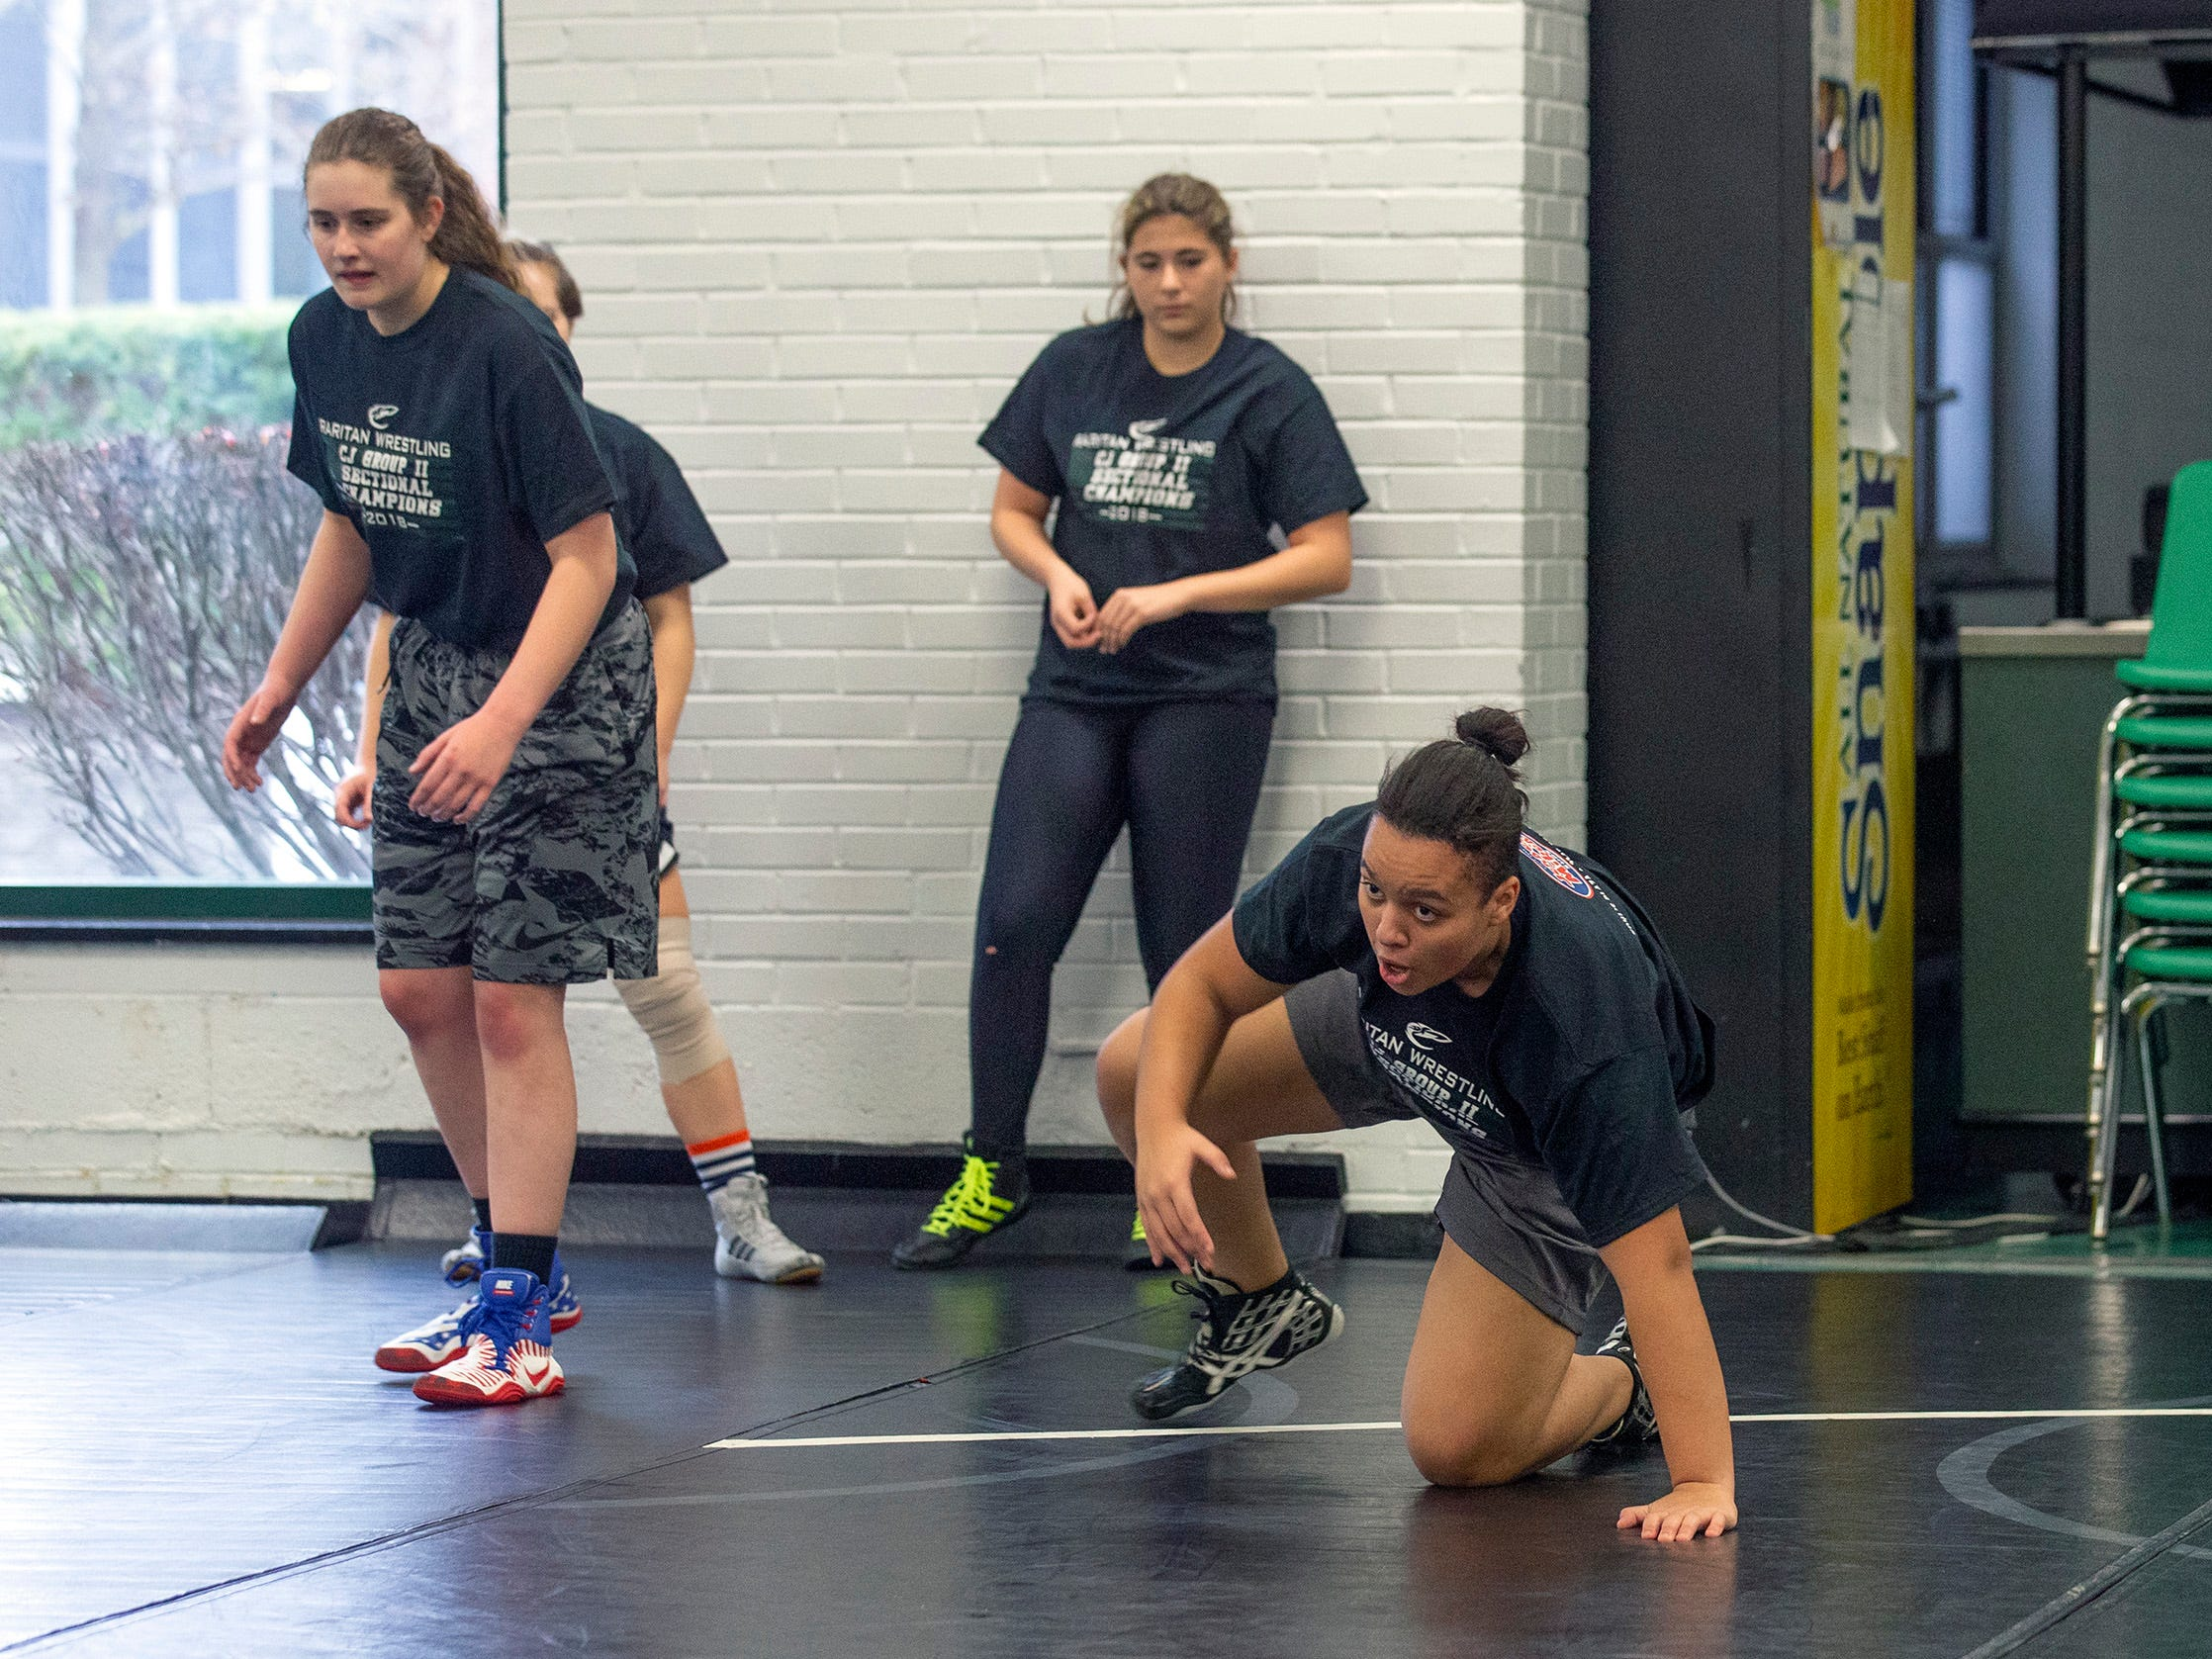 Mia Lazaurs  and others work on drills. NJSIAA is offering wrestling for girls this year and they will participate in an all girls tournament at the end of the season. Raritan High School Wrestling is fielding nearly a  full girls team this year. While girls mostly practice separately from the boys, they are in a room next to the boys and frequent coaching sessions happen in the boys room to teach moves.